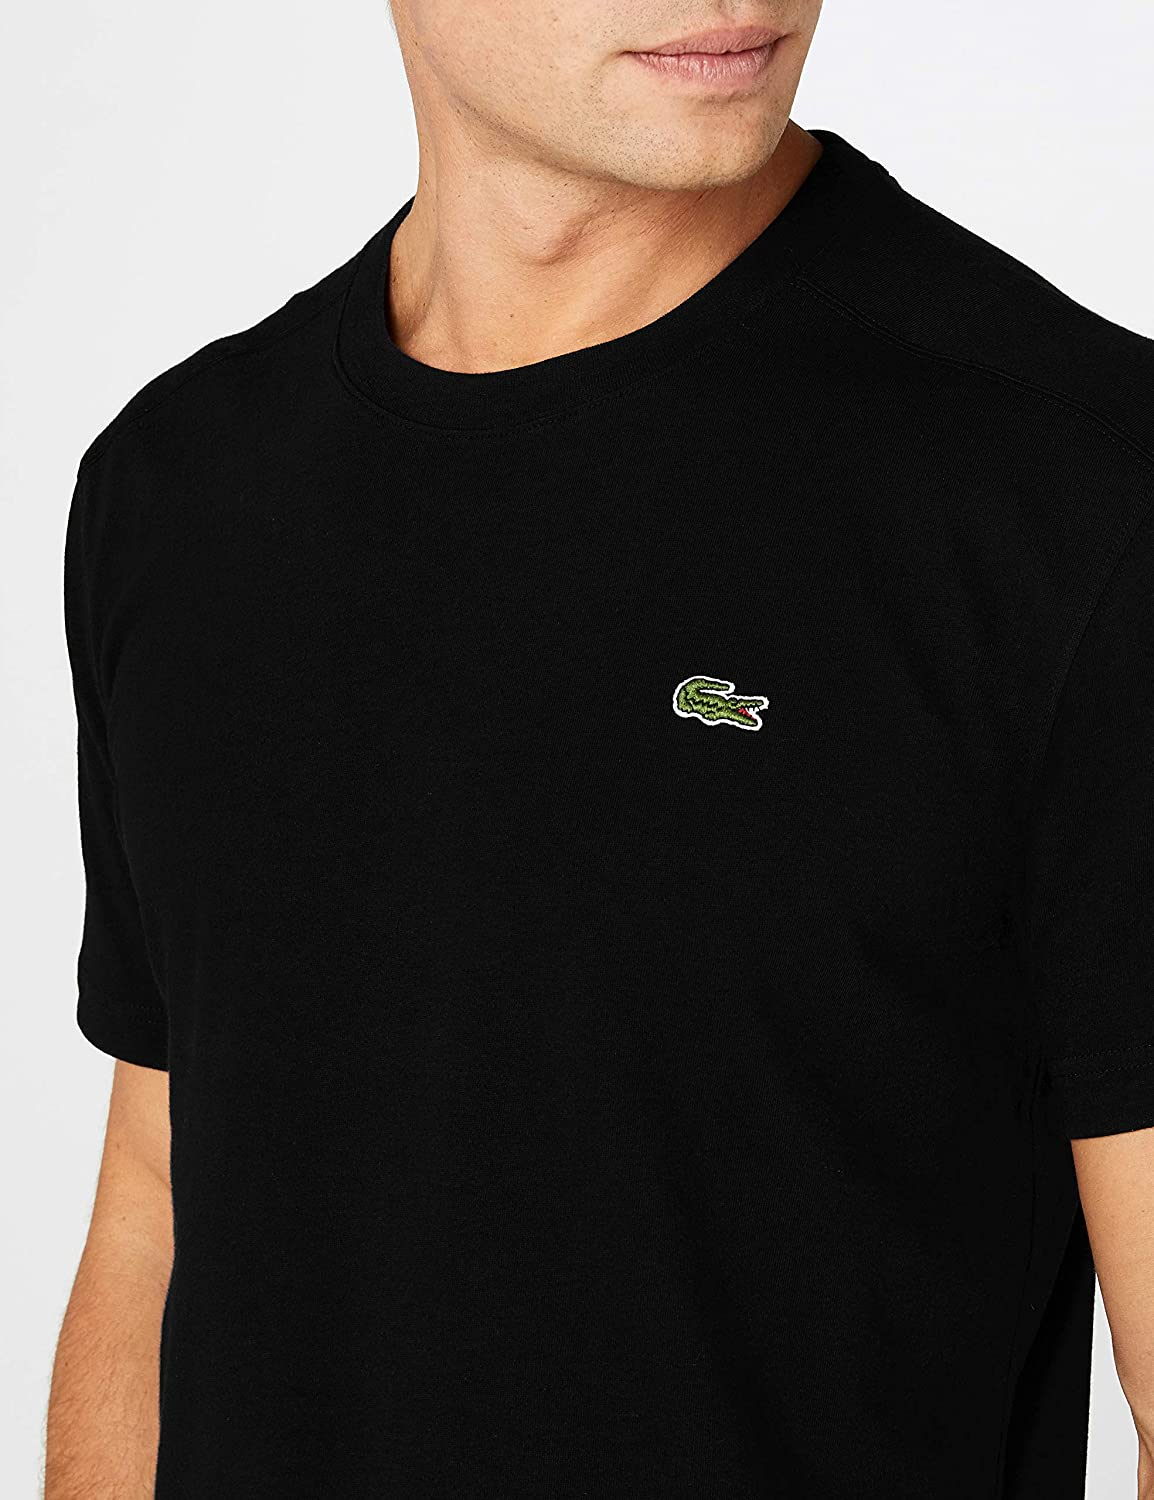 3772f544fe8db Lacoste Men s Th7618 Short Sleeve T - Shirt  Amazon.co.uk  Clothing